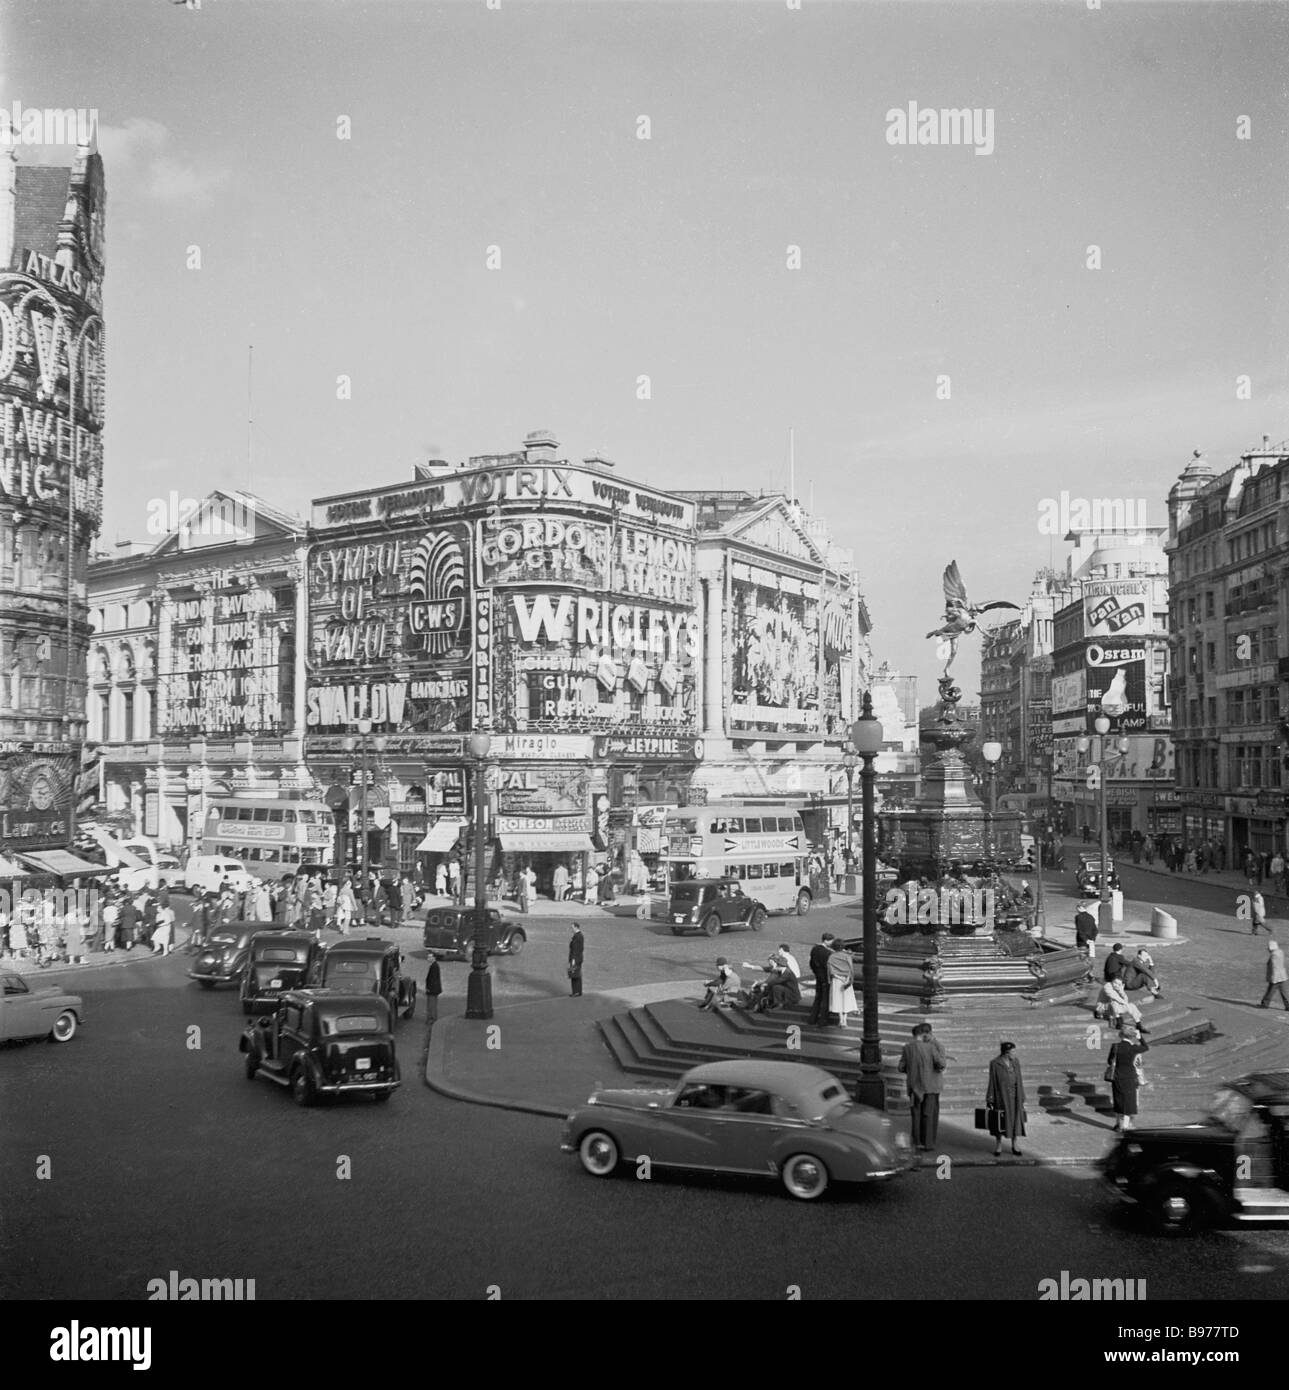 The iconic Piccadiilly Circus, London England, 1950 when it was a working roundabout, looking towards Shaftesbury - Stock Image